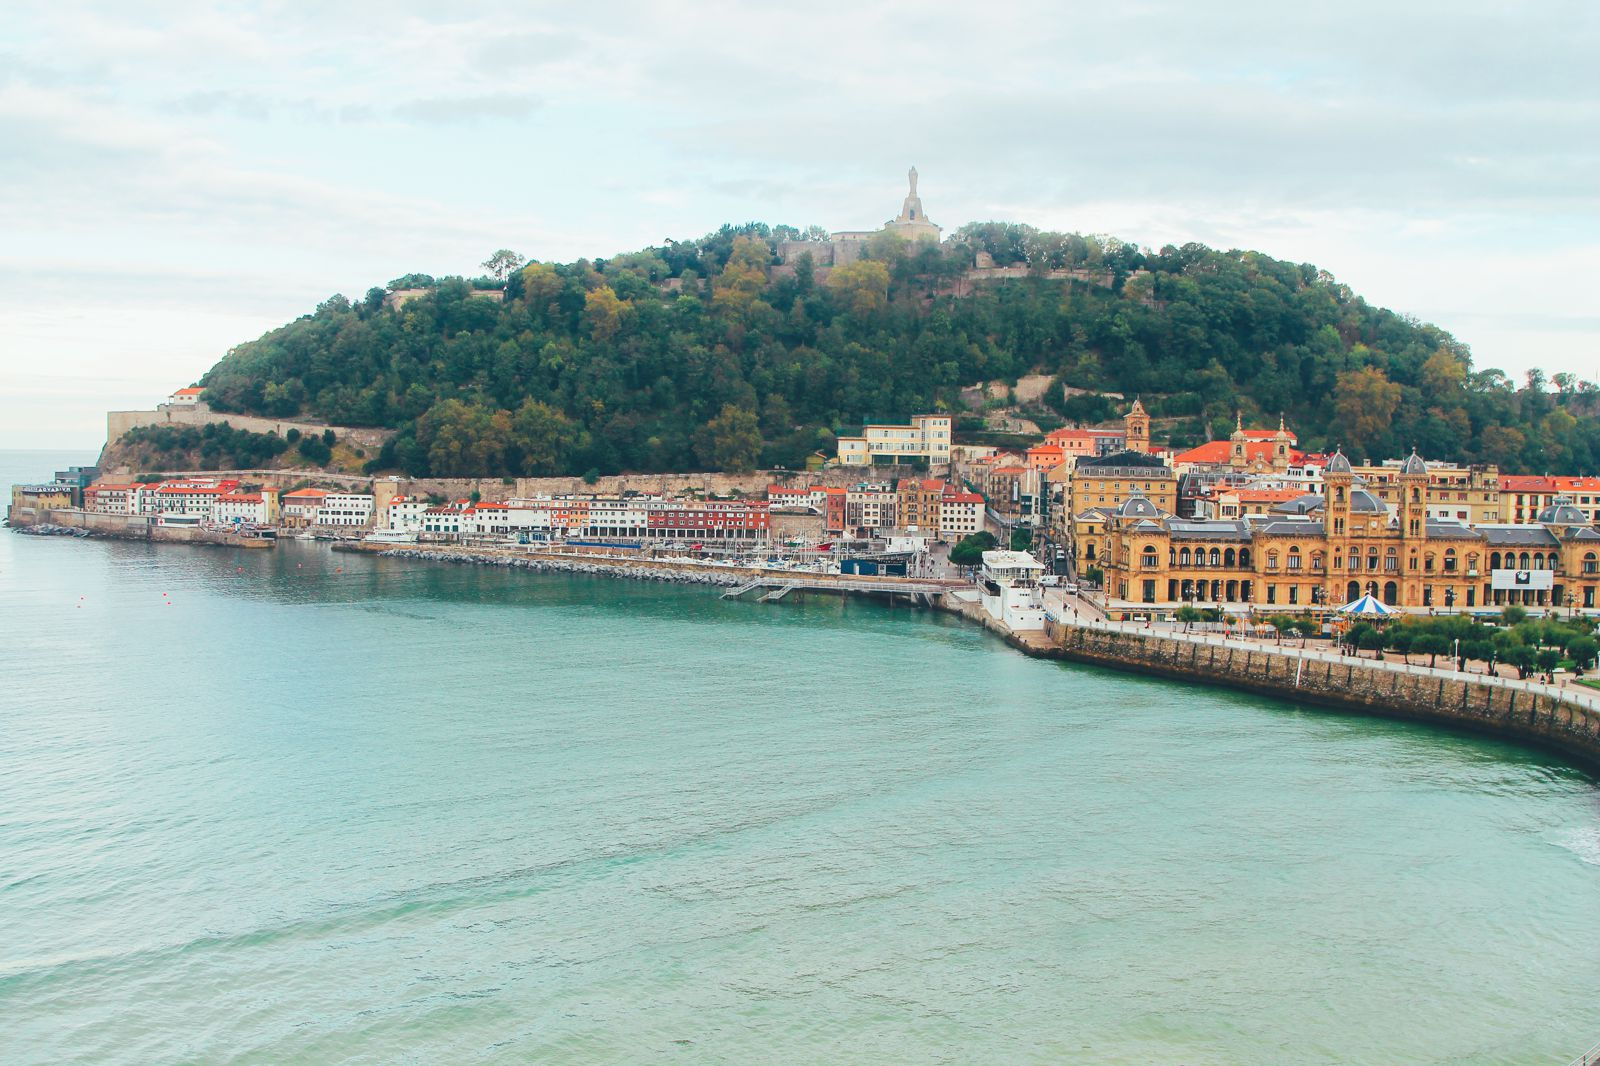 The Most Beautiful City in Spain. San Sebastian, Gipuzkoa, Spain, Hotel Londres (43)